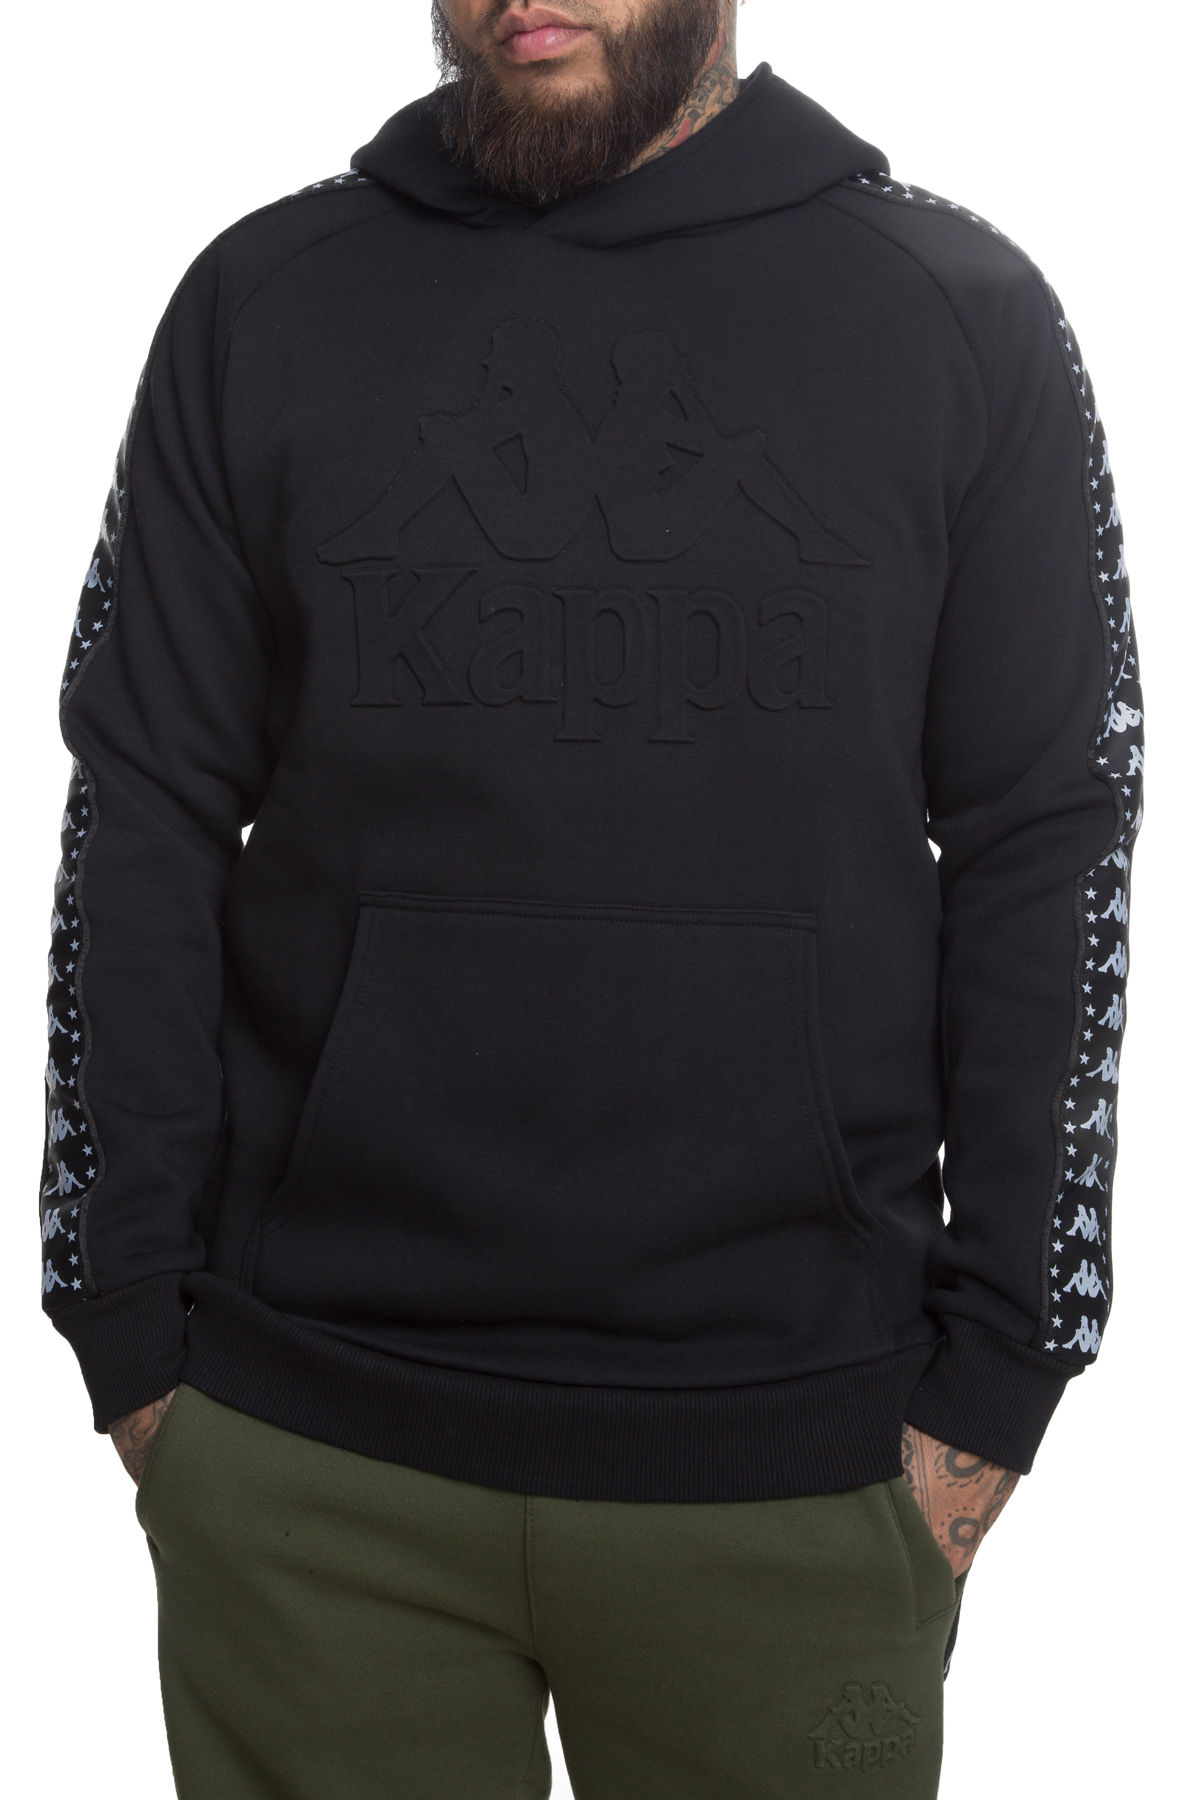 Image of The Authentic Bzaleh Pullover Hoodie in Black and White